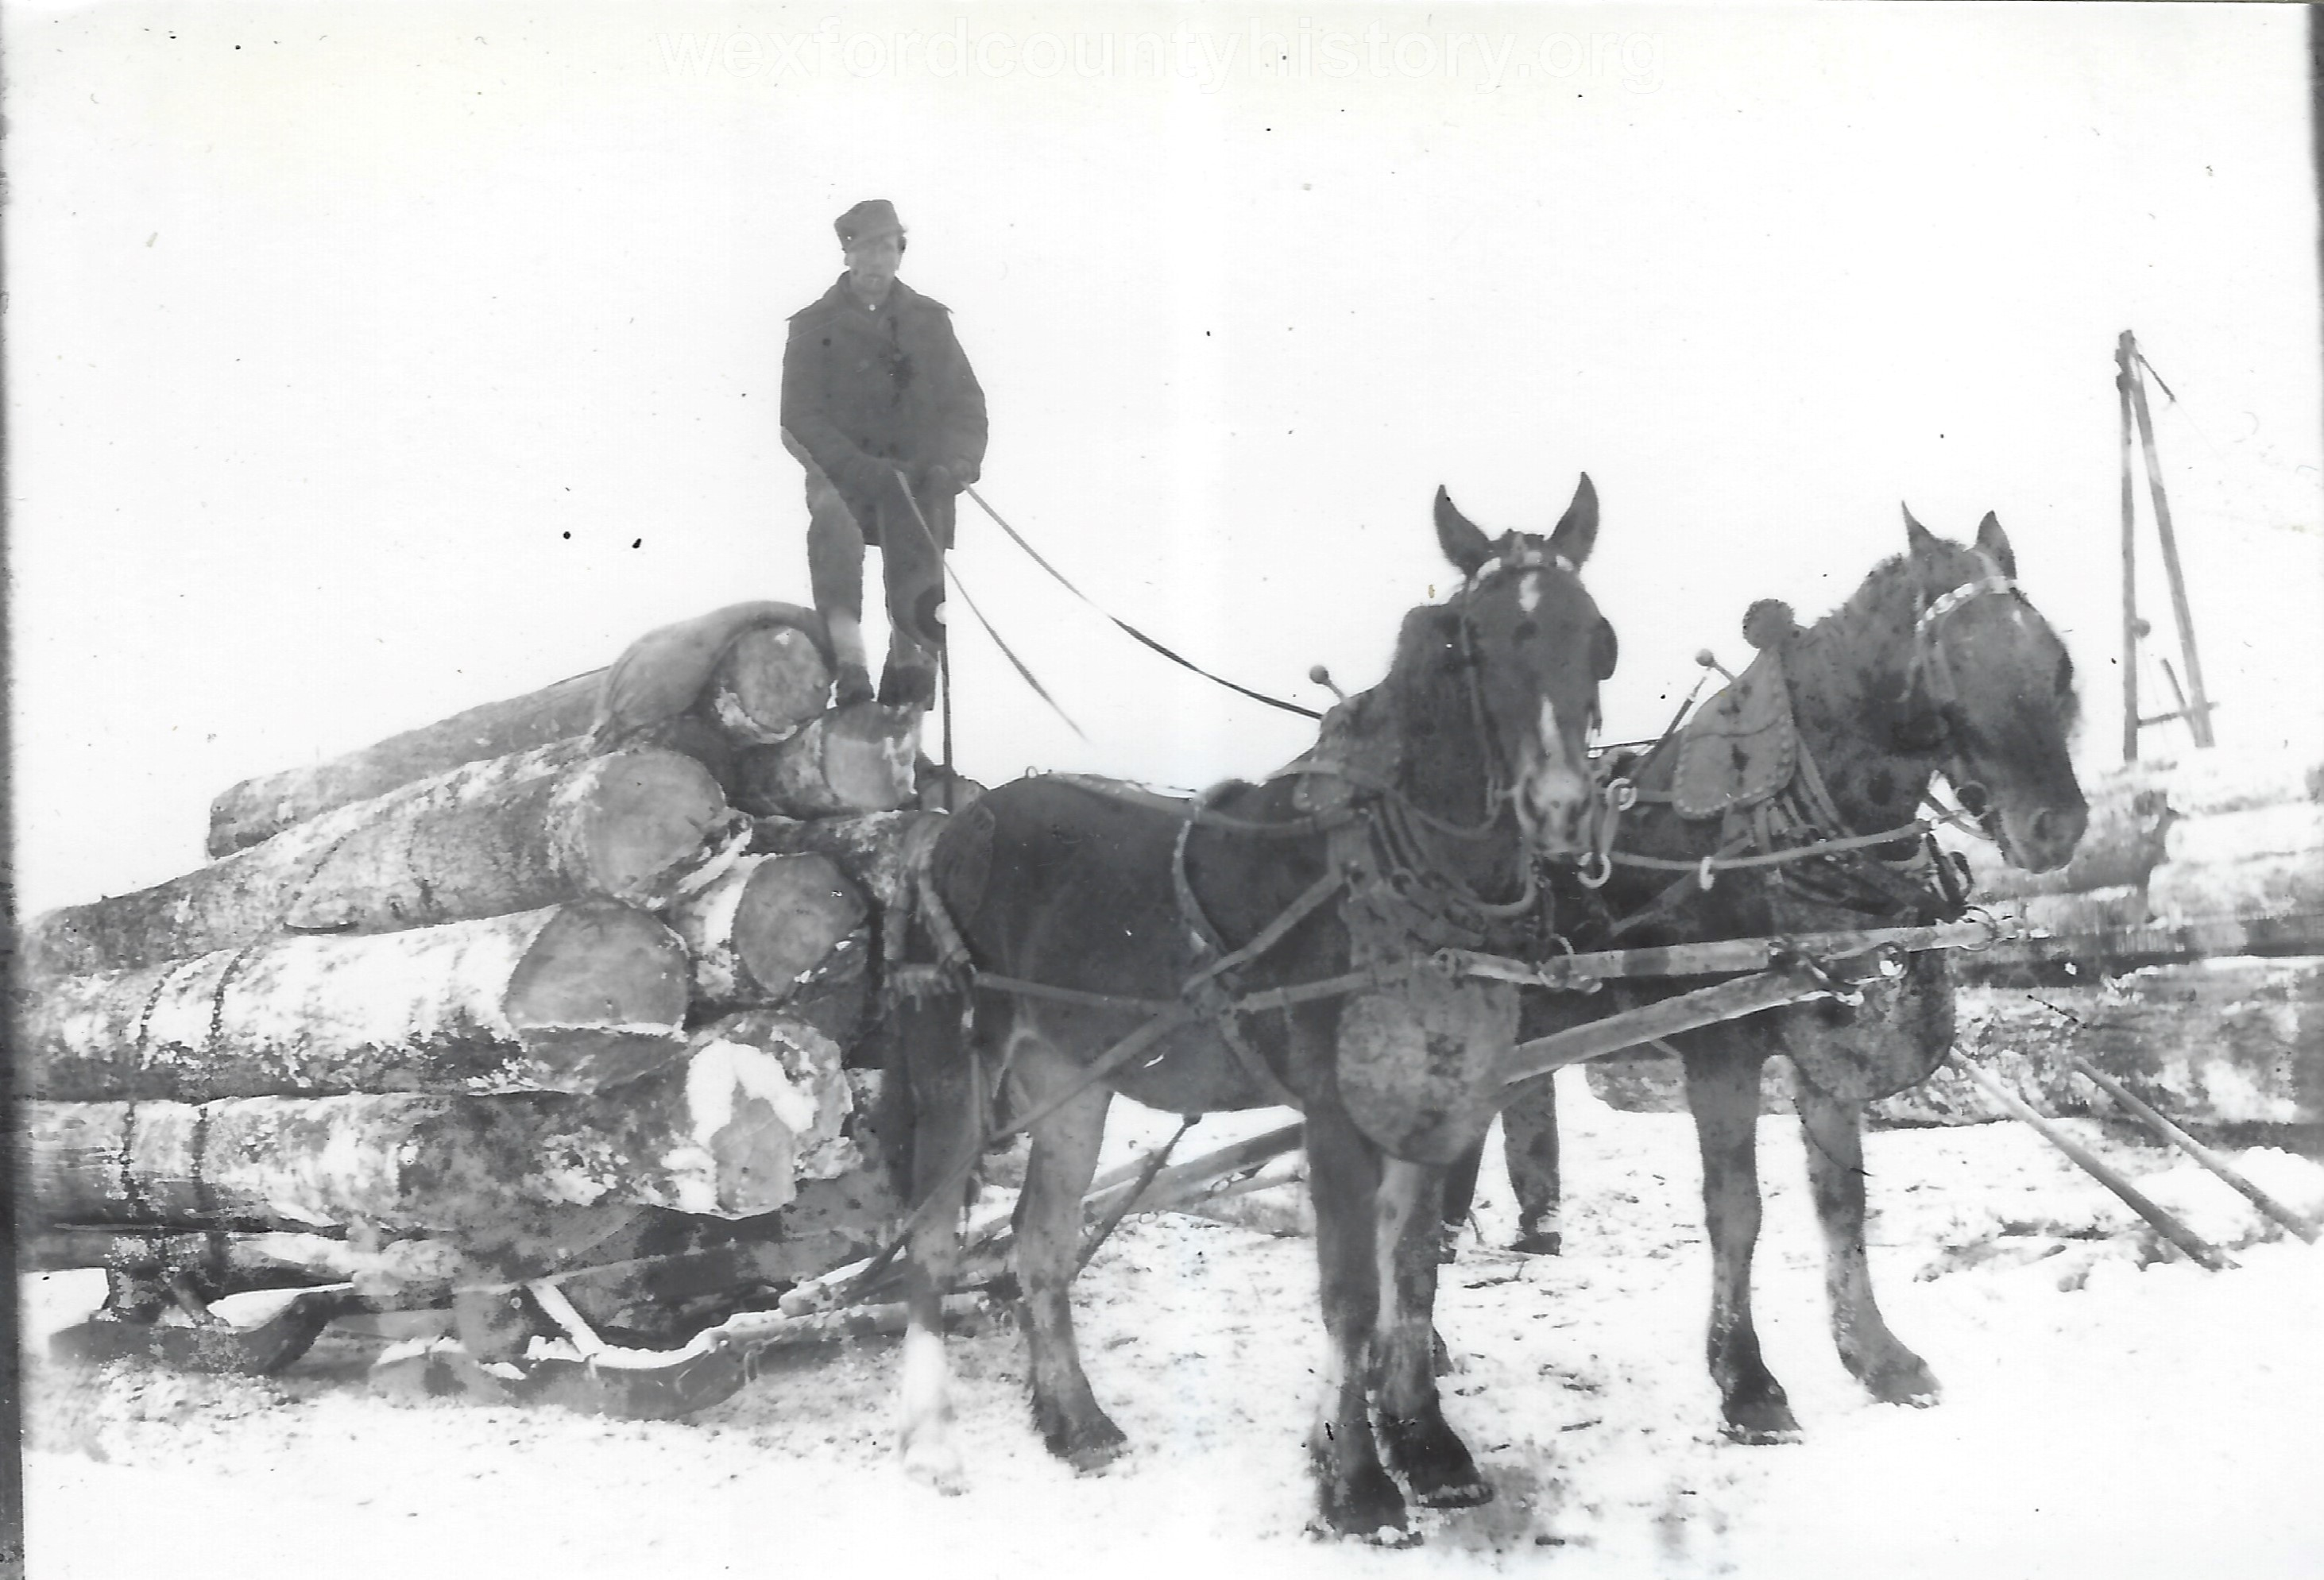 Cadillac-Lumber-Horse-Team-Pulling-Load-Of-Logs-On-Sled-8